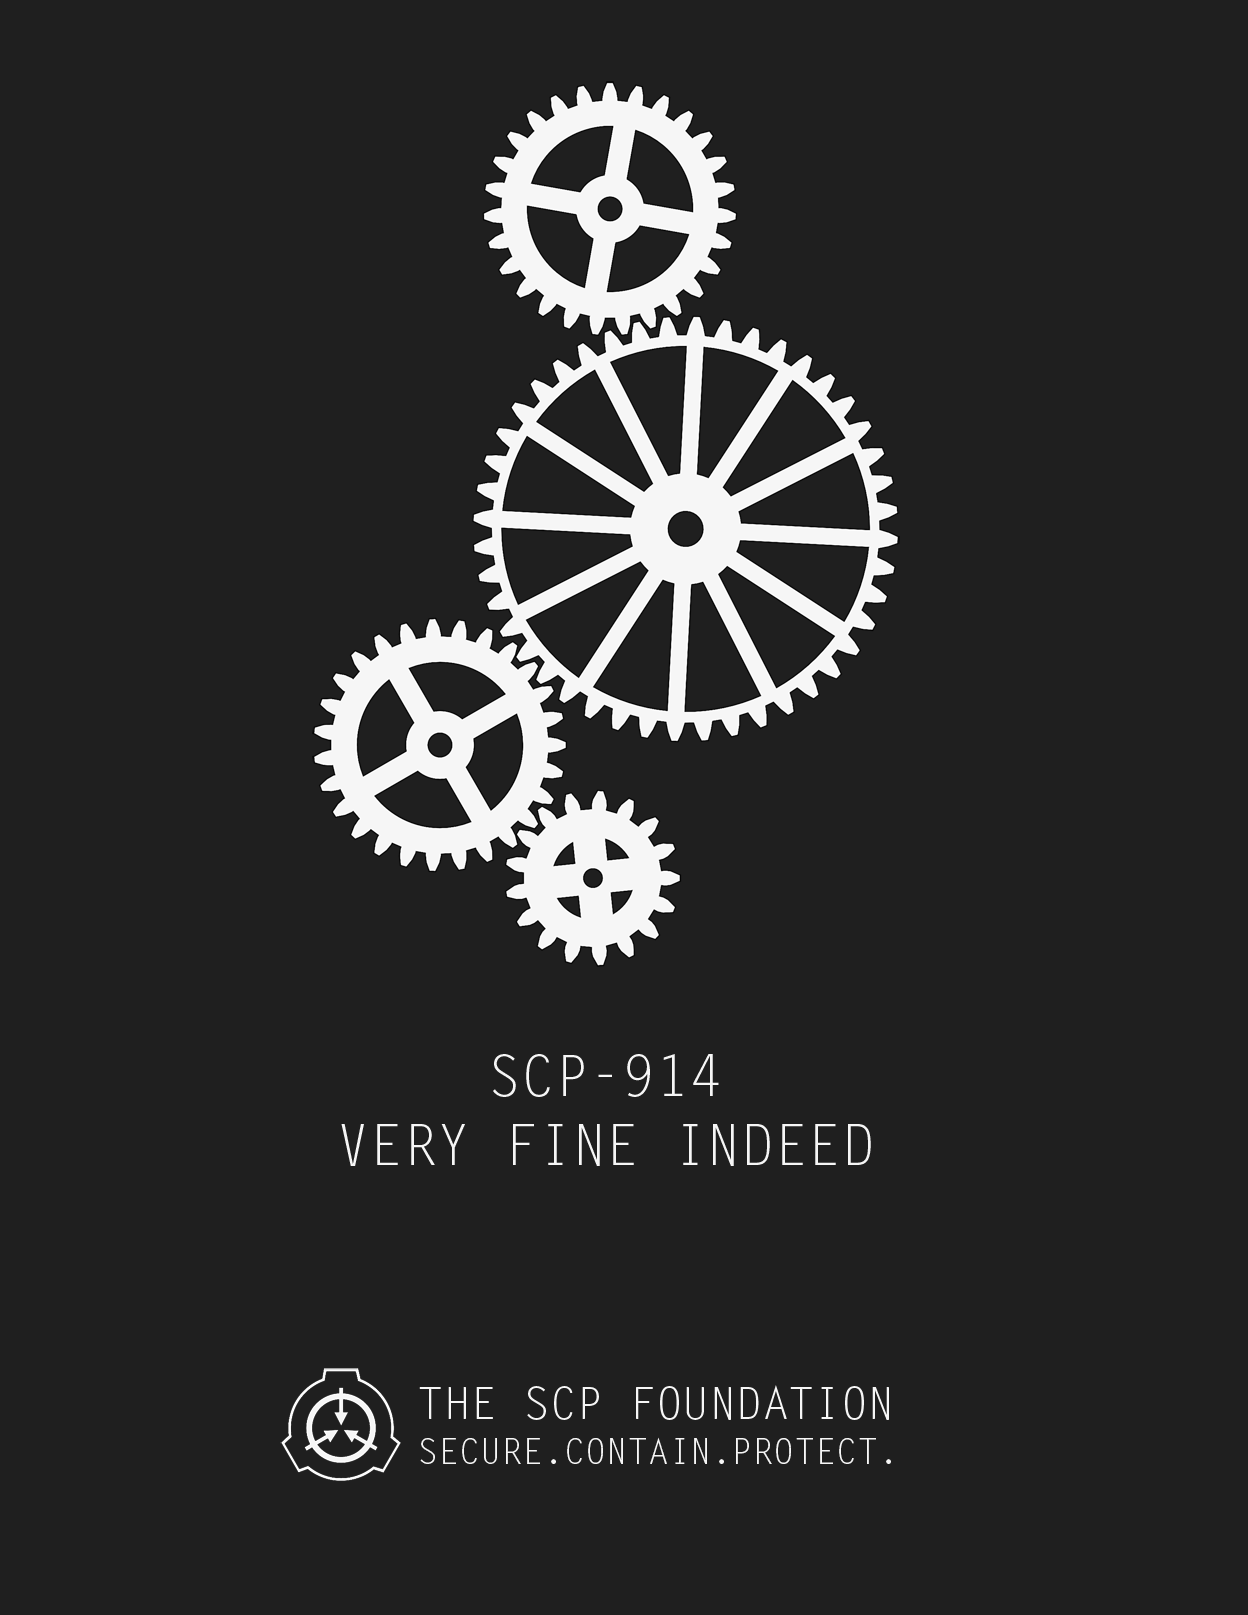 Scp 914 The Clockworks Poster By Dr Kens Scp Foundation Know